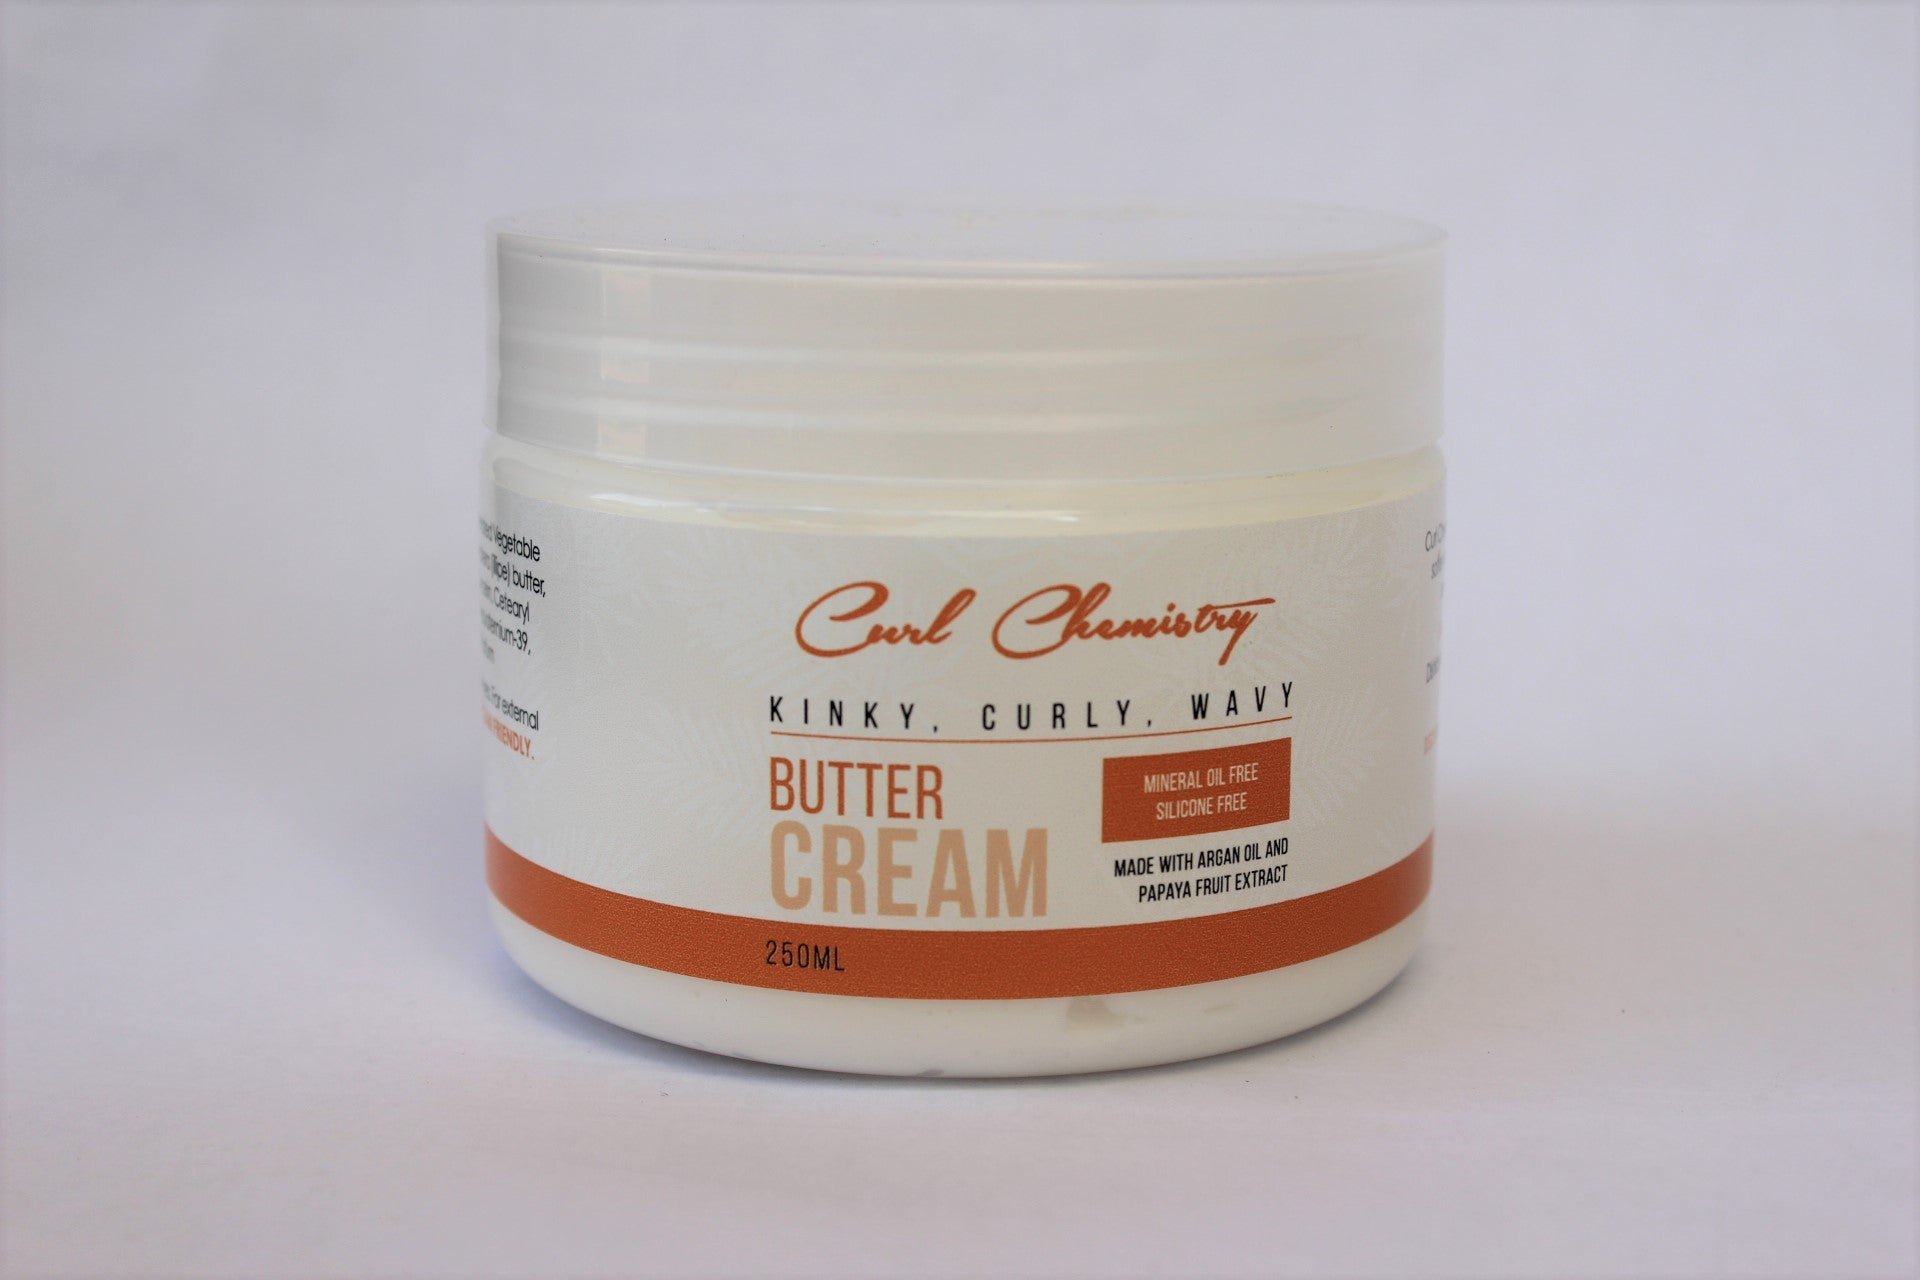 Curl Chemistry Butter Cream